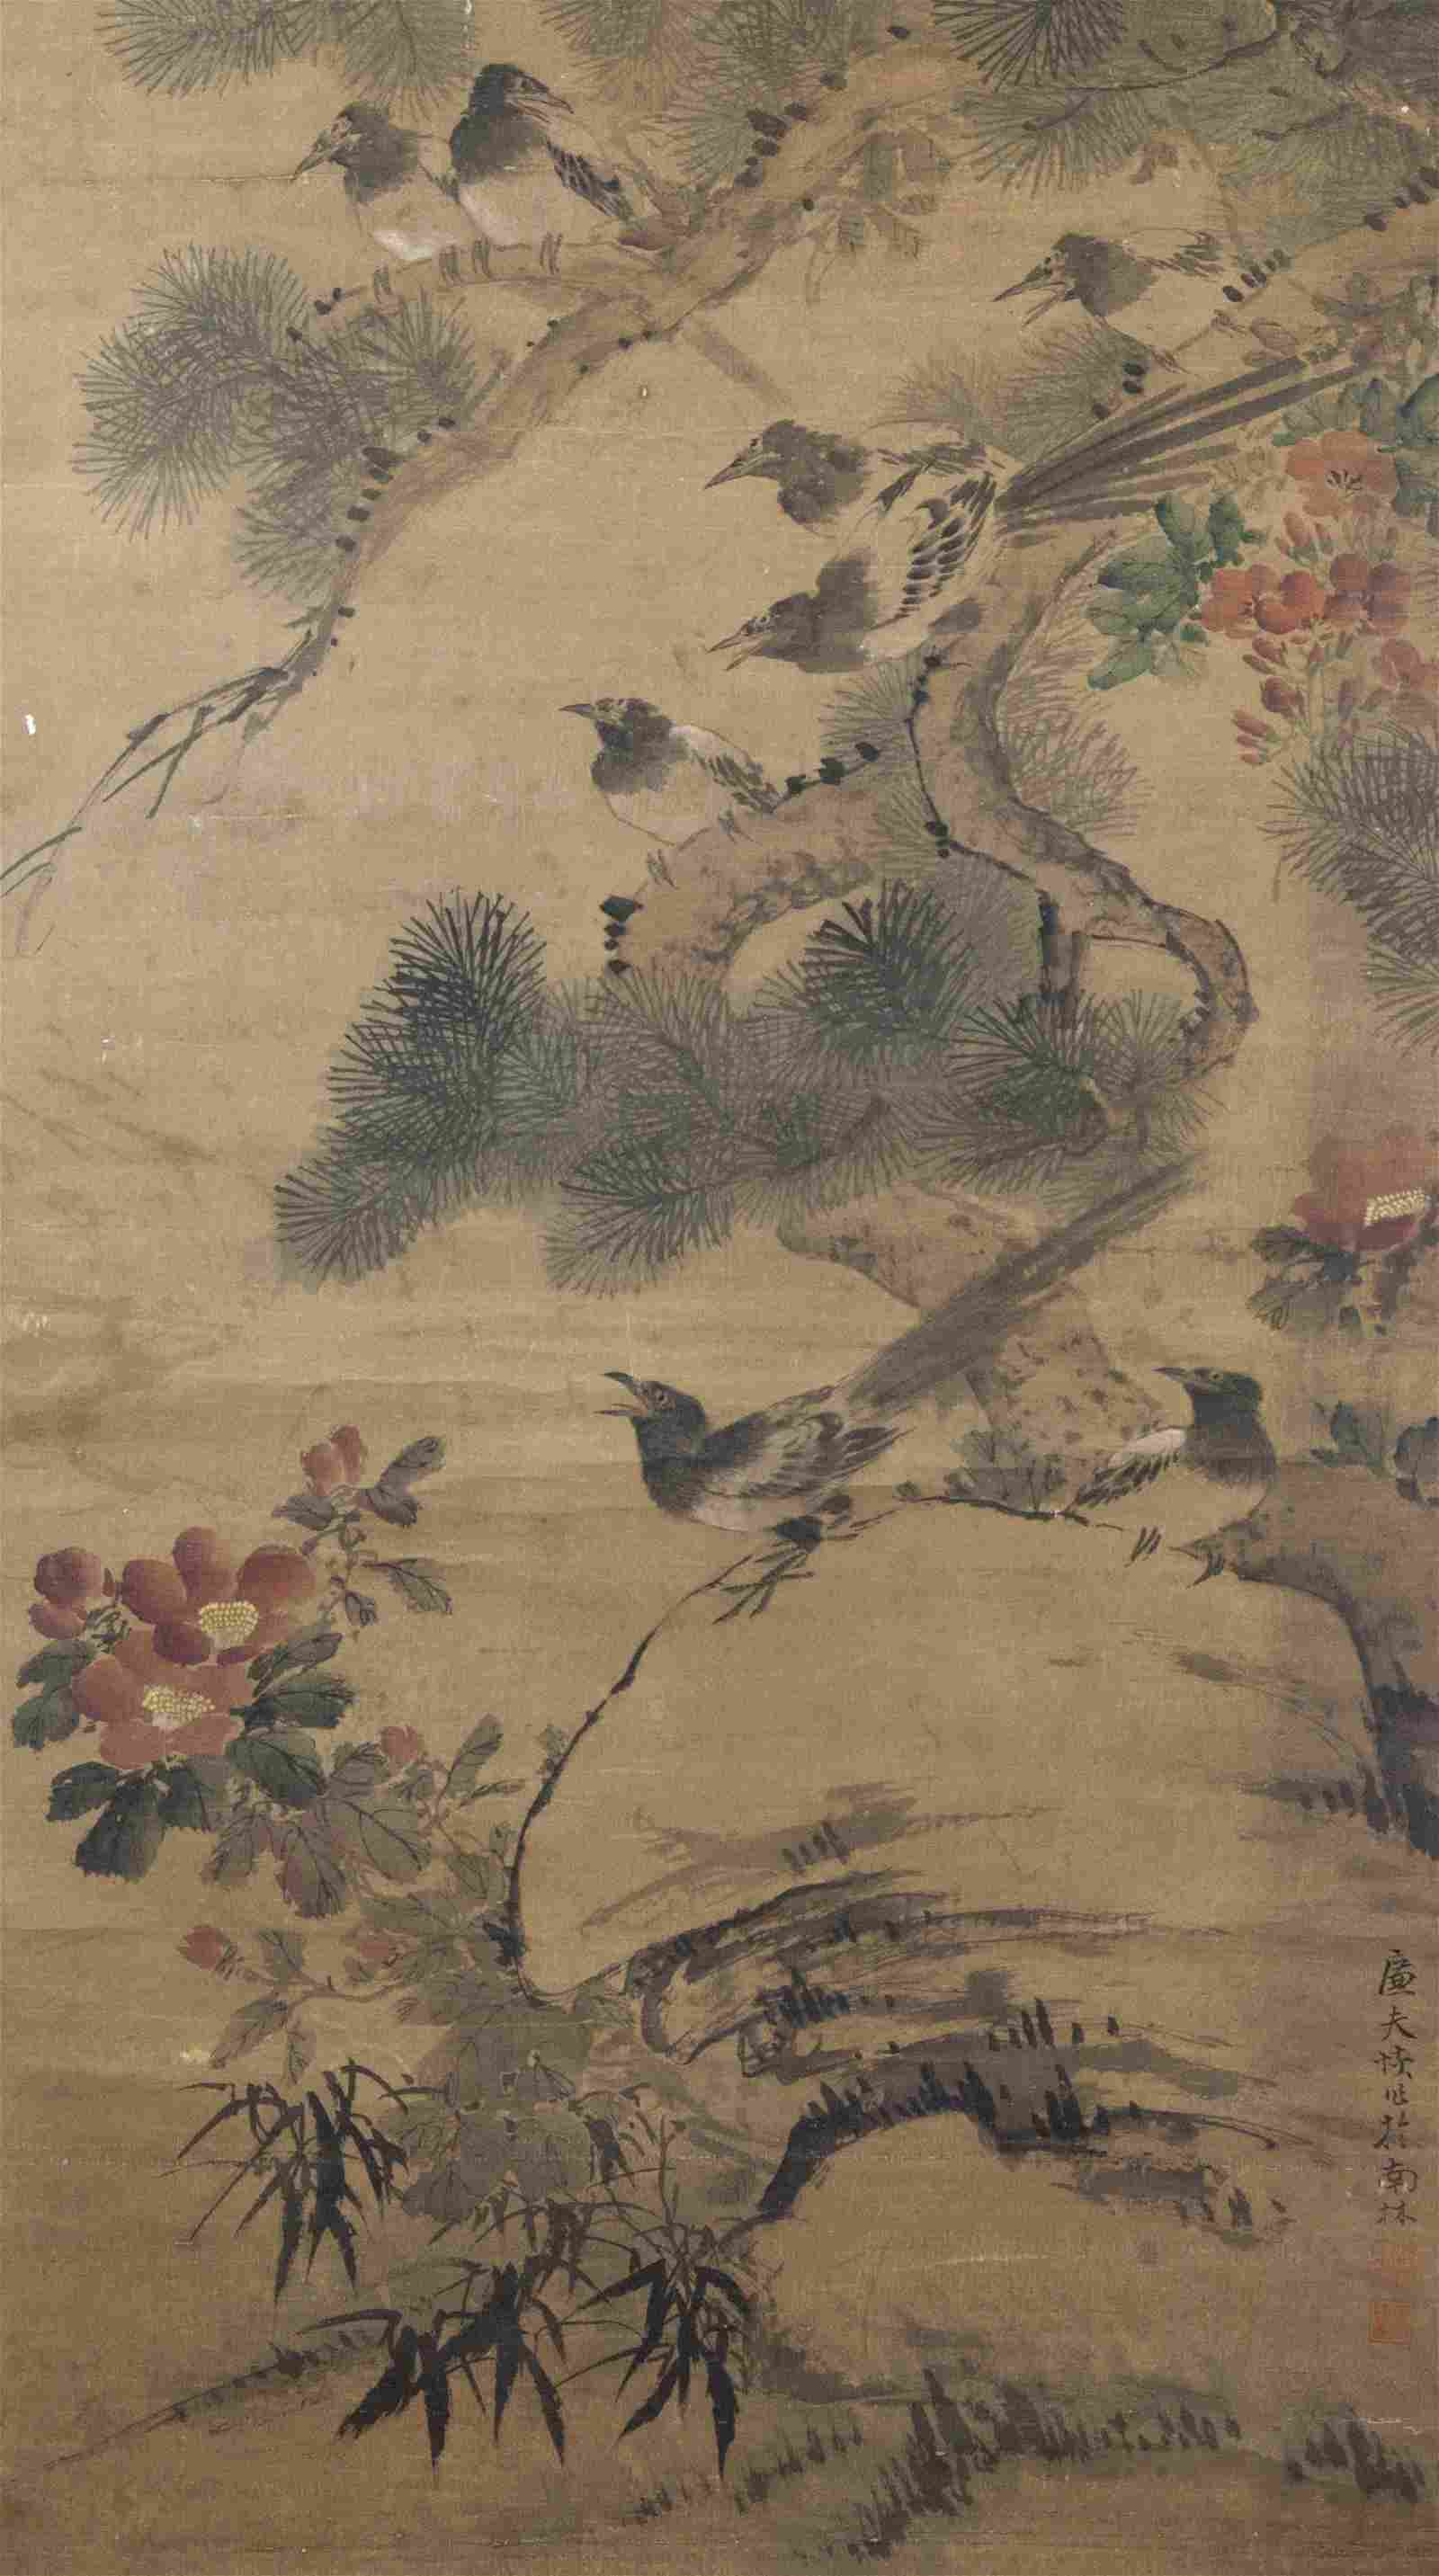 Chinese Watercolor Silk Scroll Signed by Artist